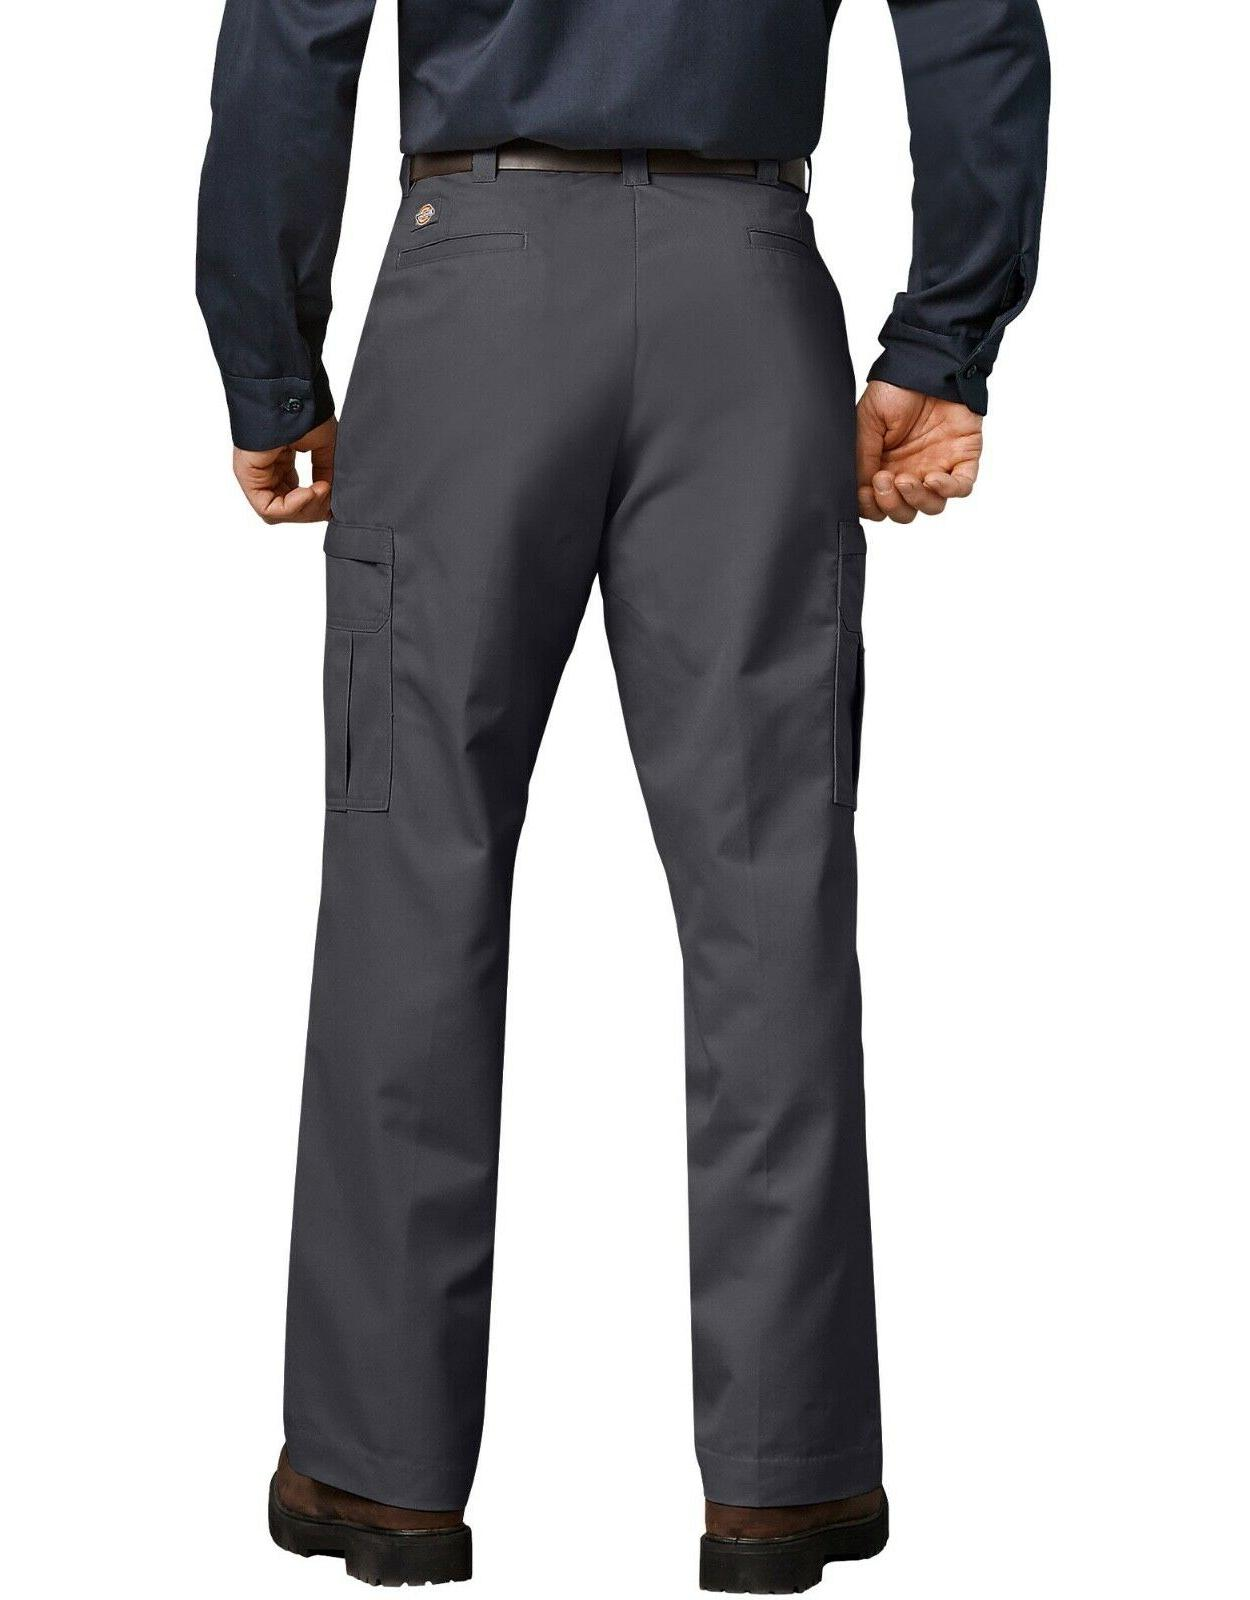 New with Mens Industrial Cargo Pants 2112372 Charcoal